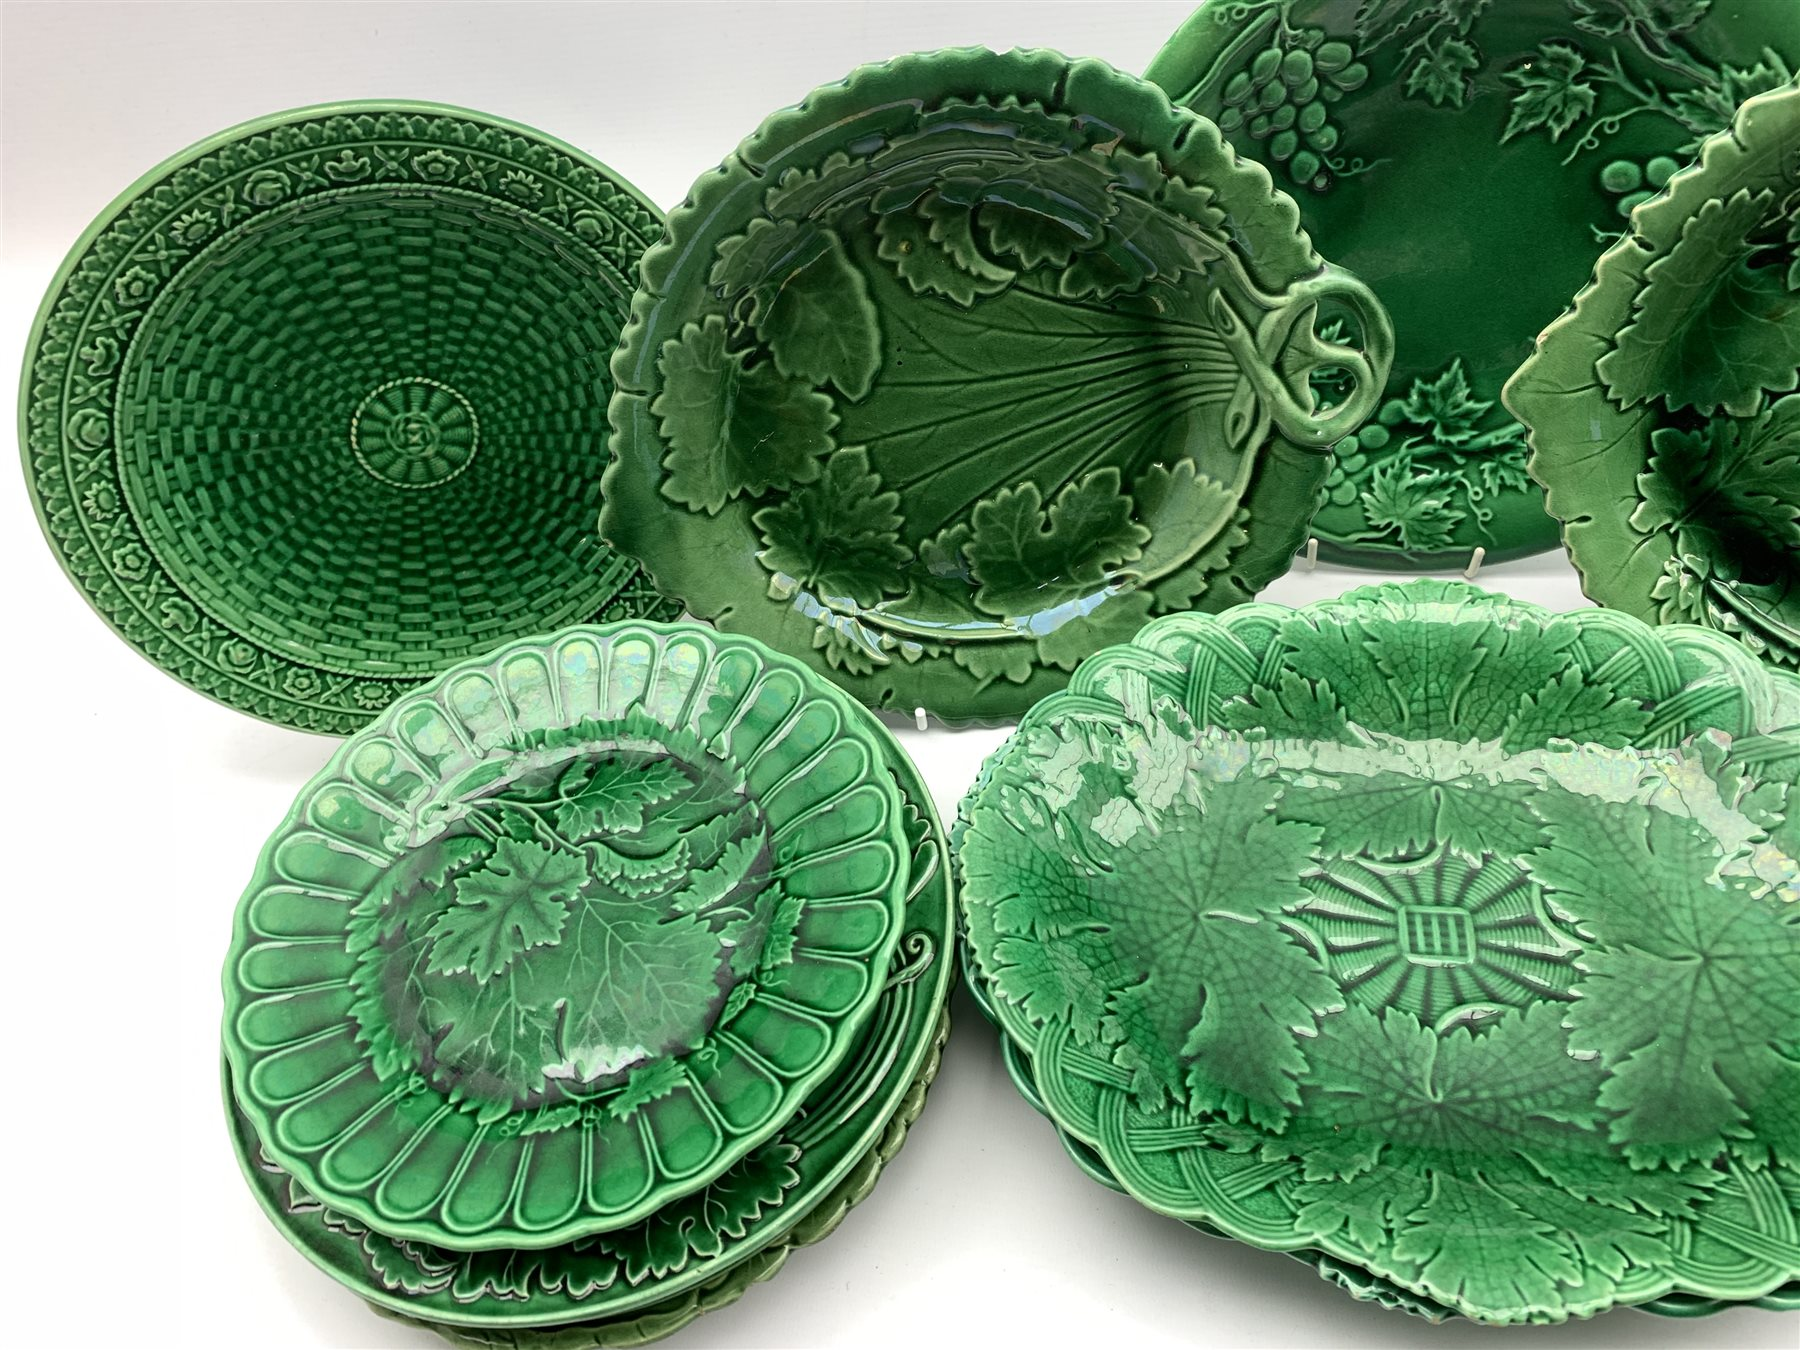 Pair of 19th century Wedgwood green glazed leaf moulded oval shallow dishes W28cm, pair of similar p - Image 3 of 5